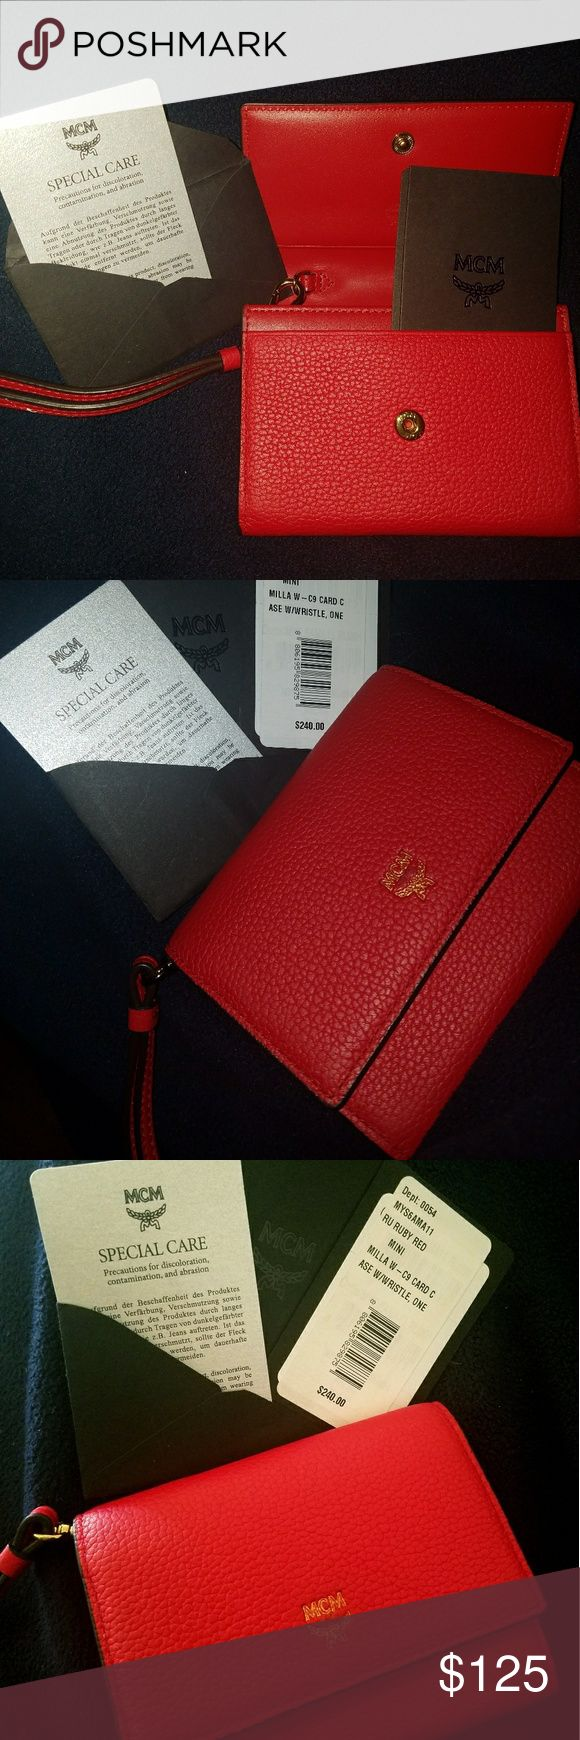 MCM Clutch PRICE DROP!!Small Chic MCM clutch for the on-the-go girl!!! MCM Bags Clutches & Wristlets